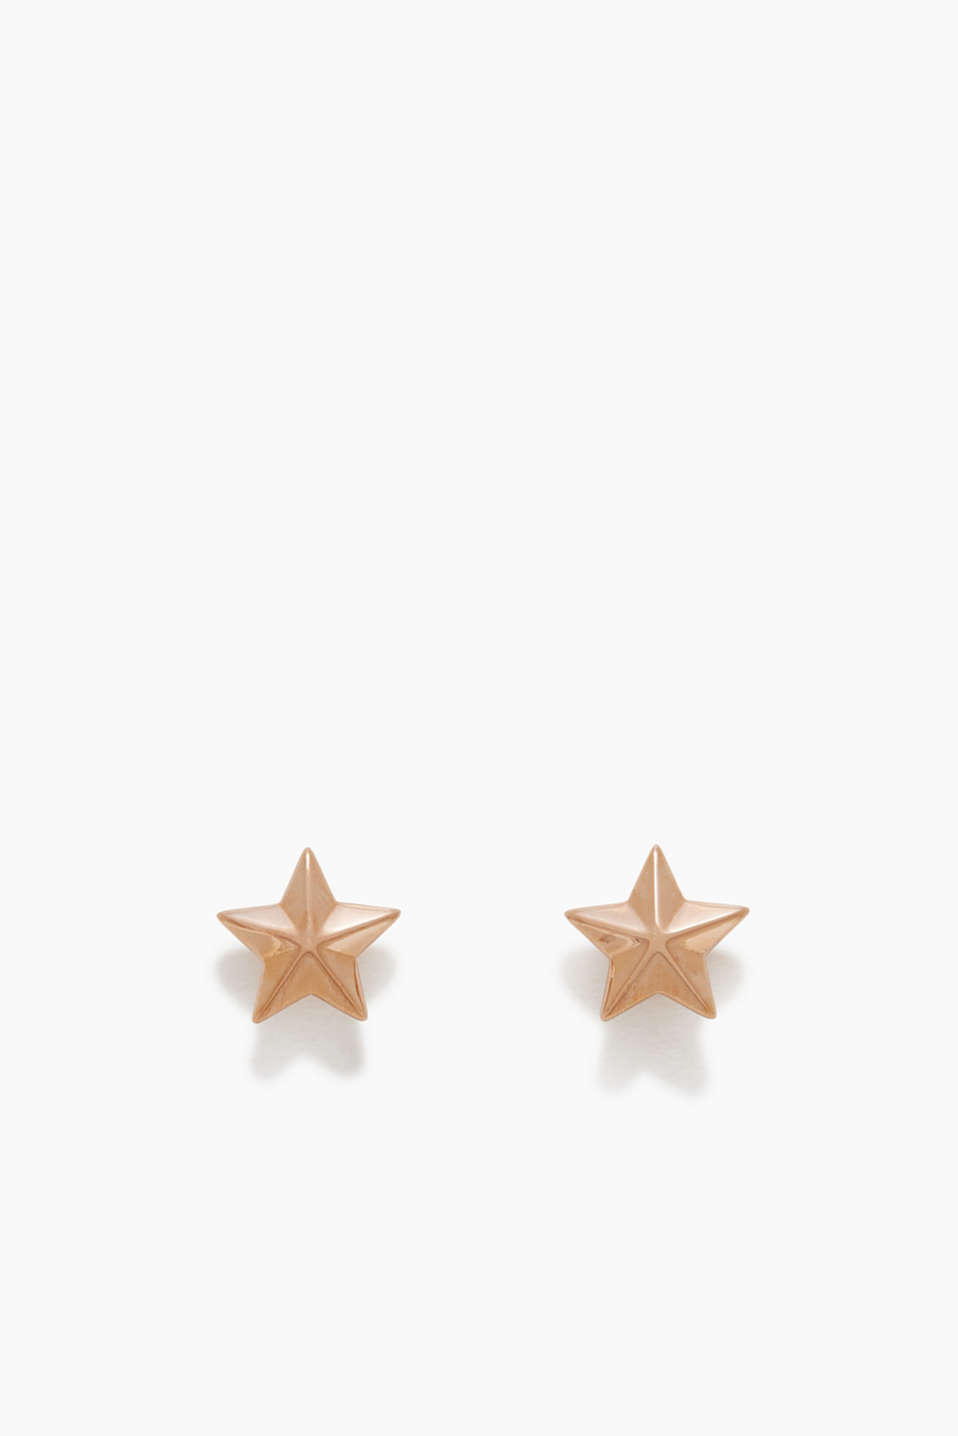 Cool star shape meets trendy rose gold! These stud earrings made of sterling silver come in a fashionable design.